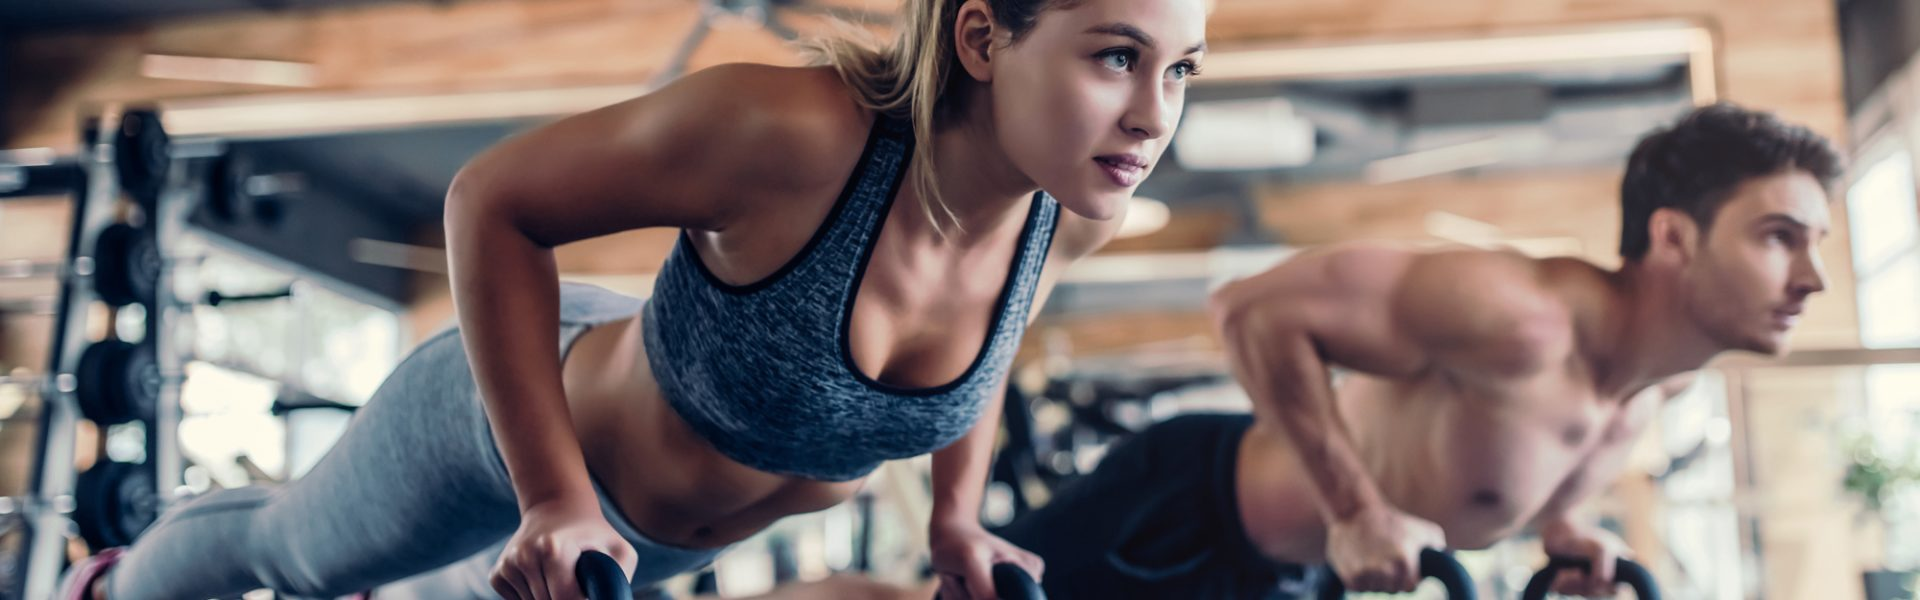 fitness instructor with public liability insurance